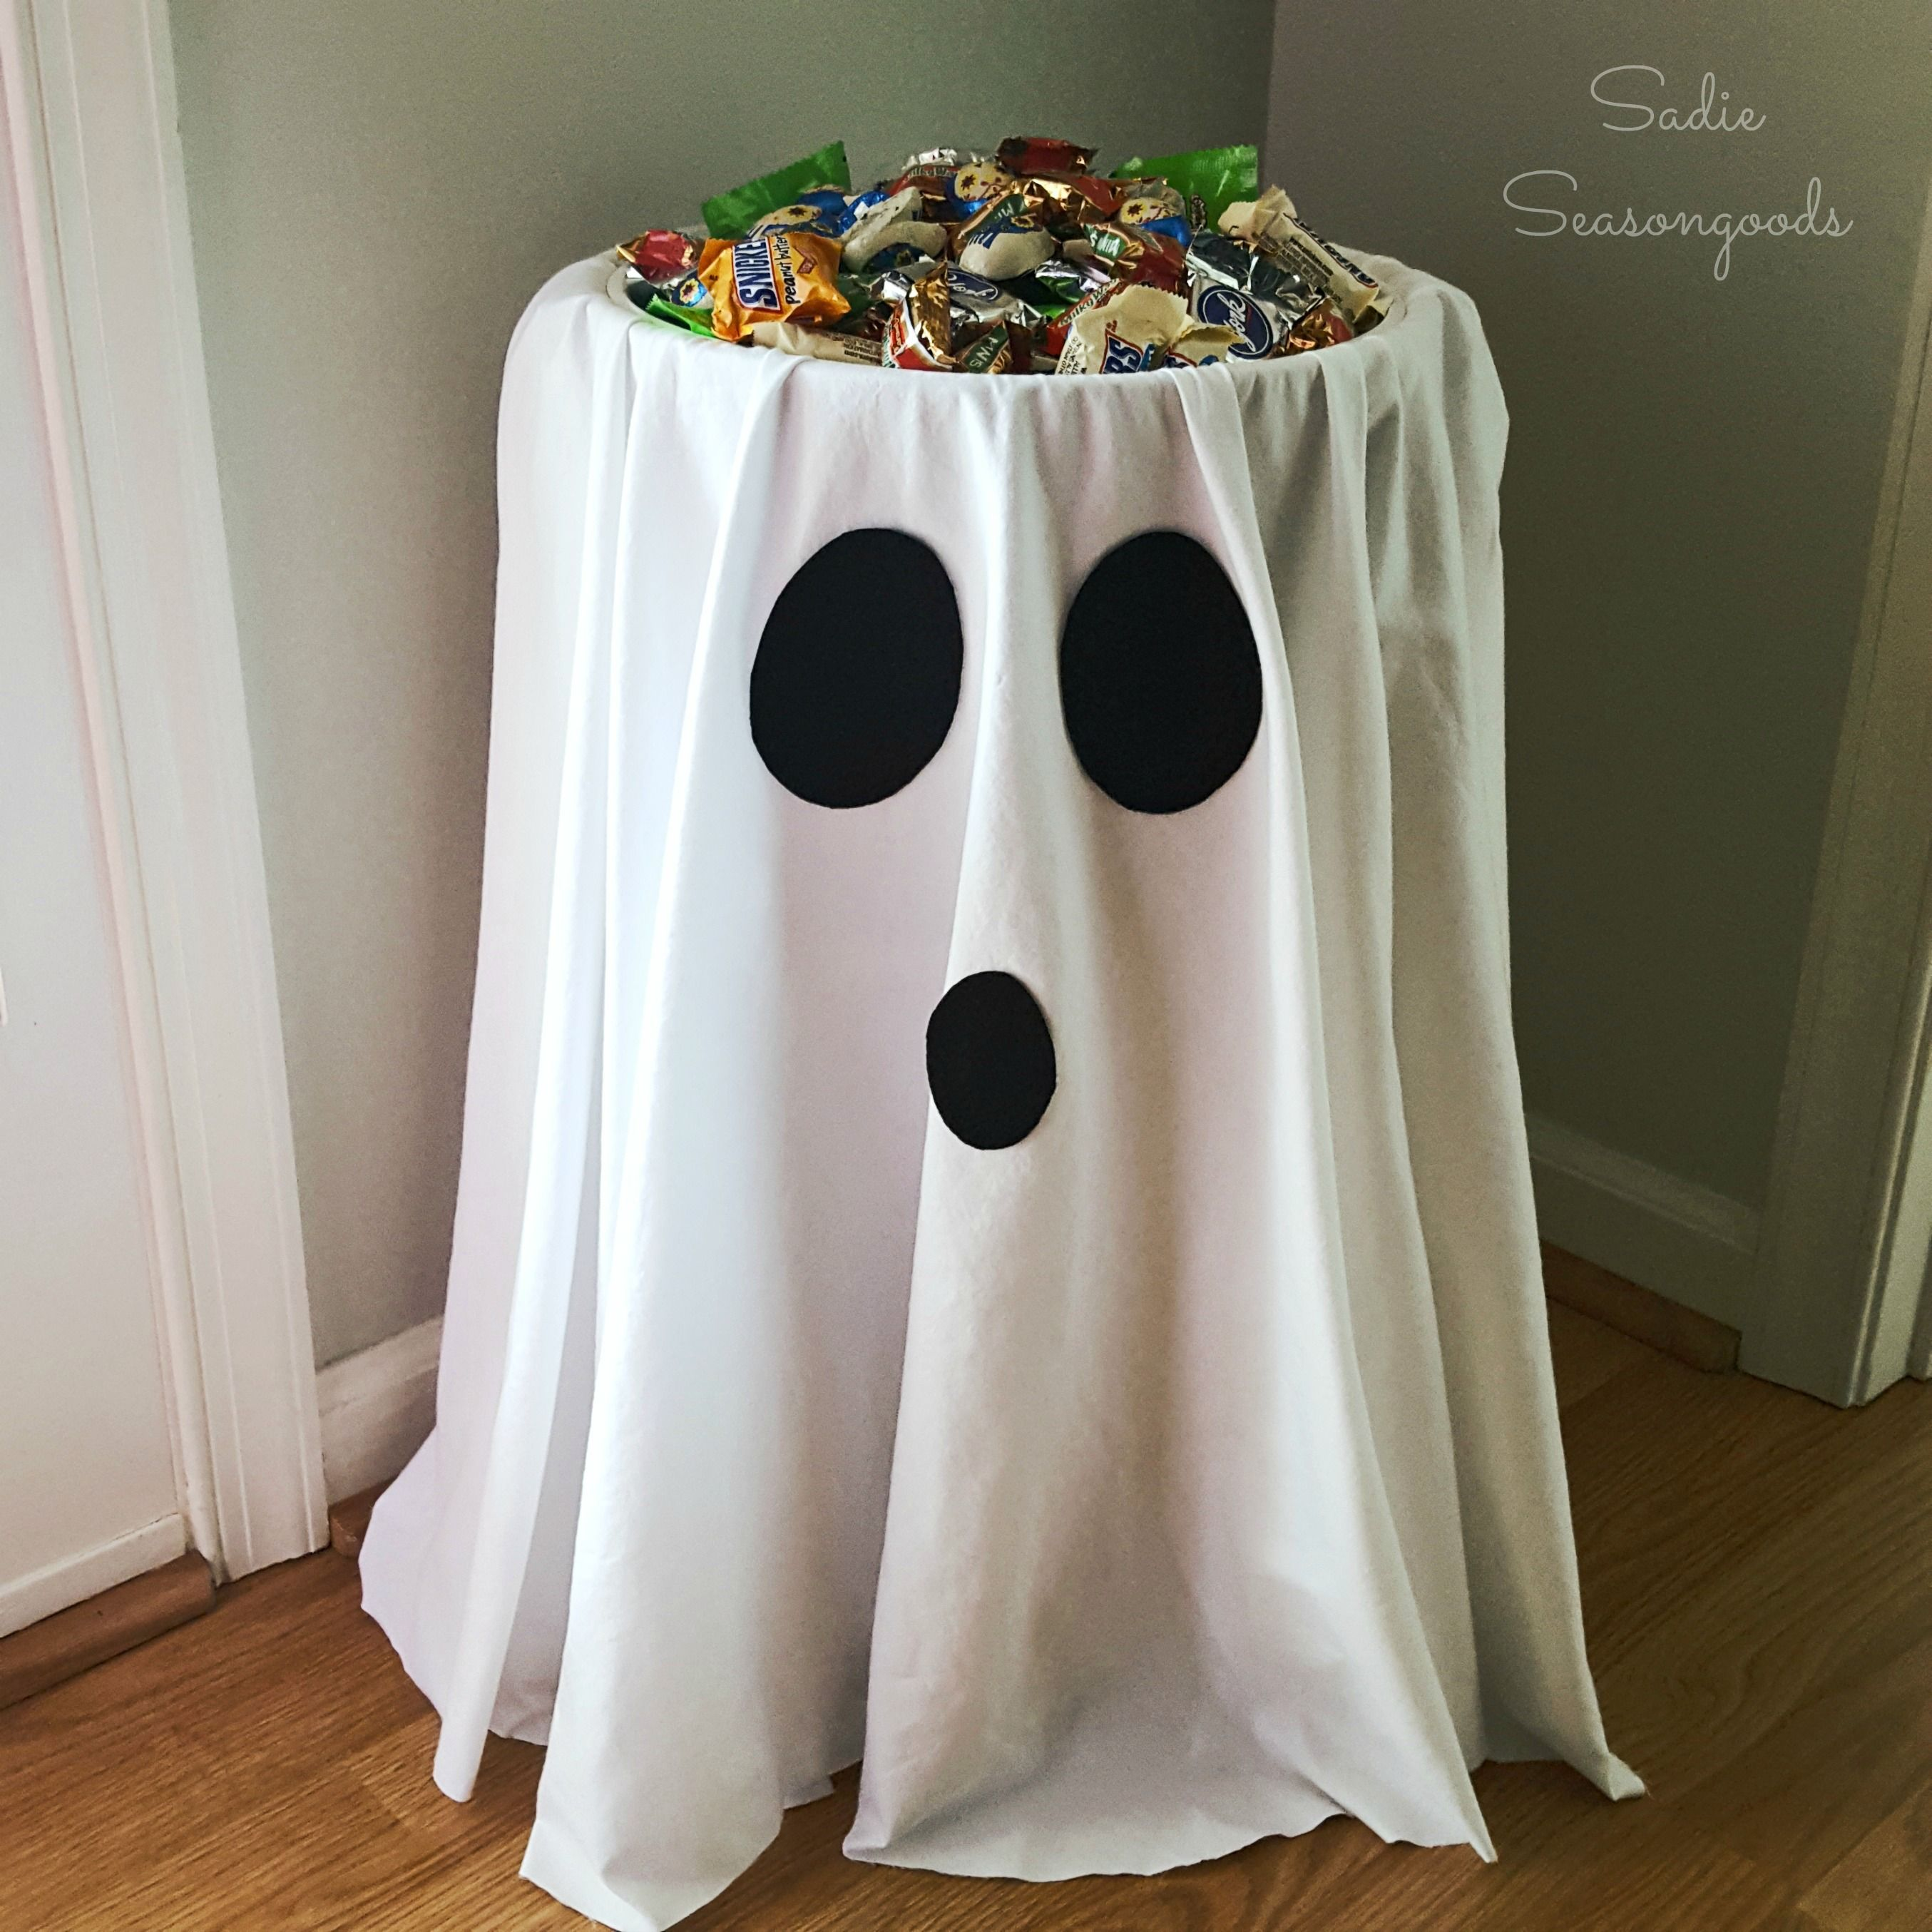 Diy halloween ideas ensures a devilish air diy halloween diy halloween ideas ensures a devilish air solutioingenieria